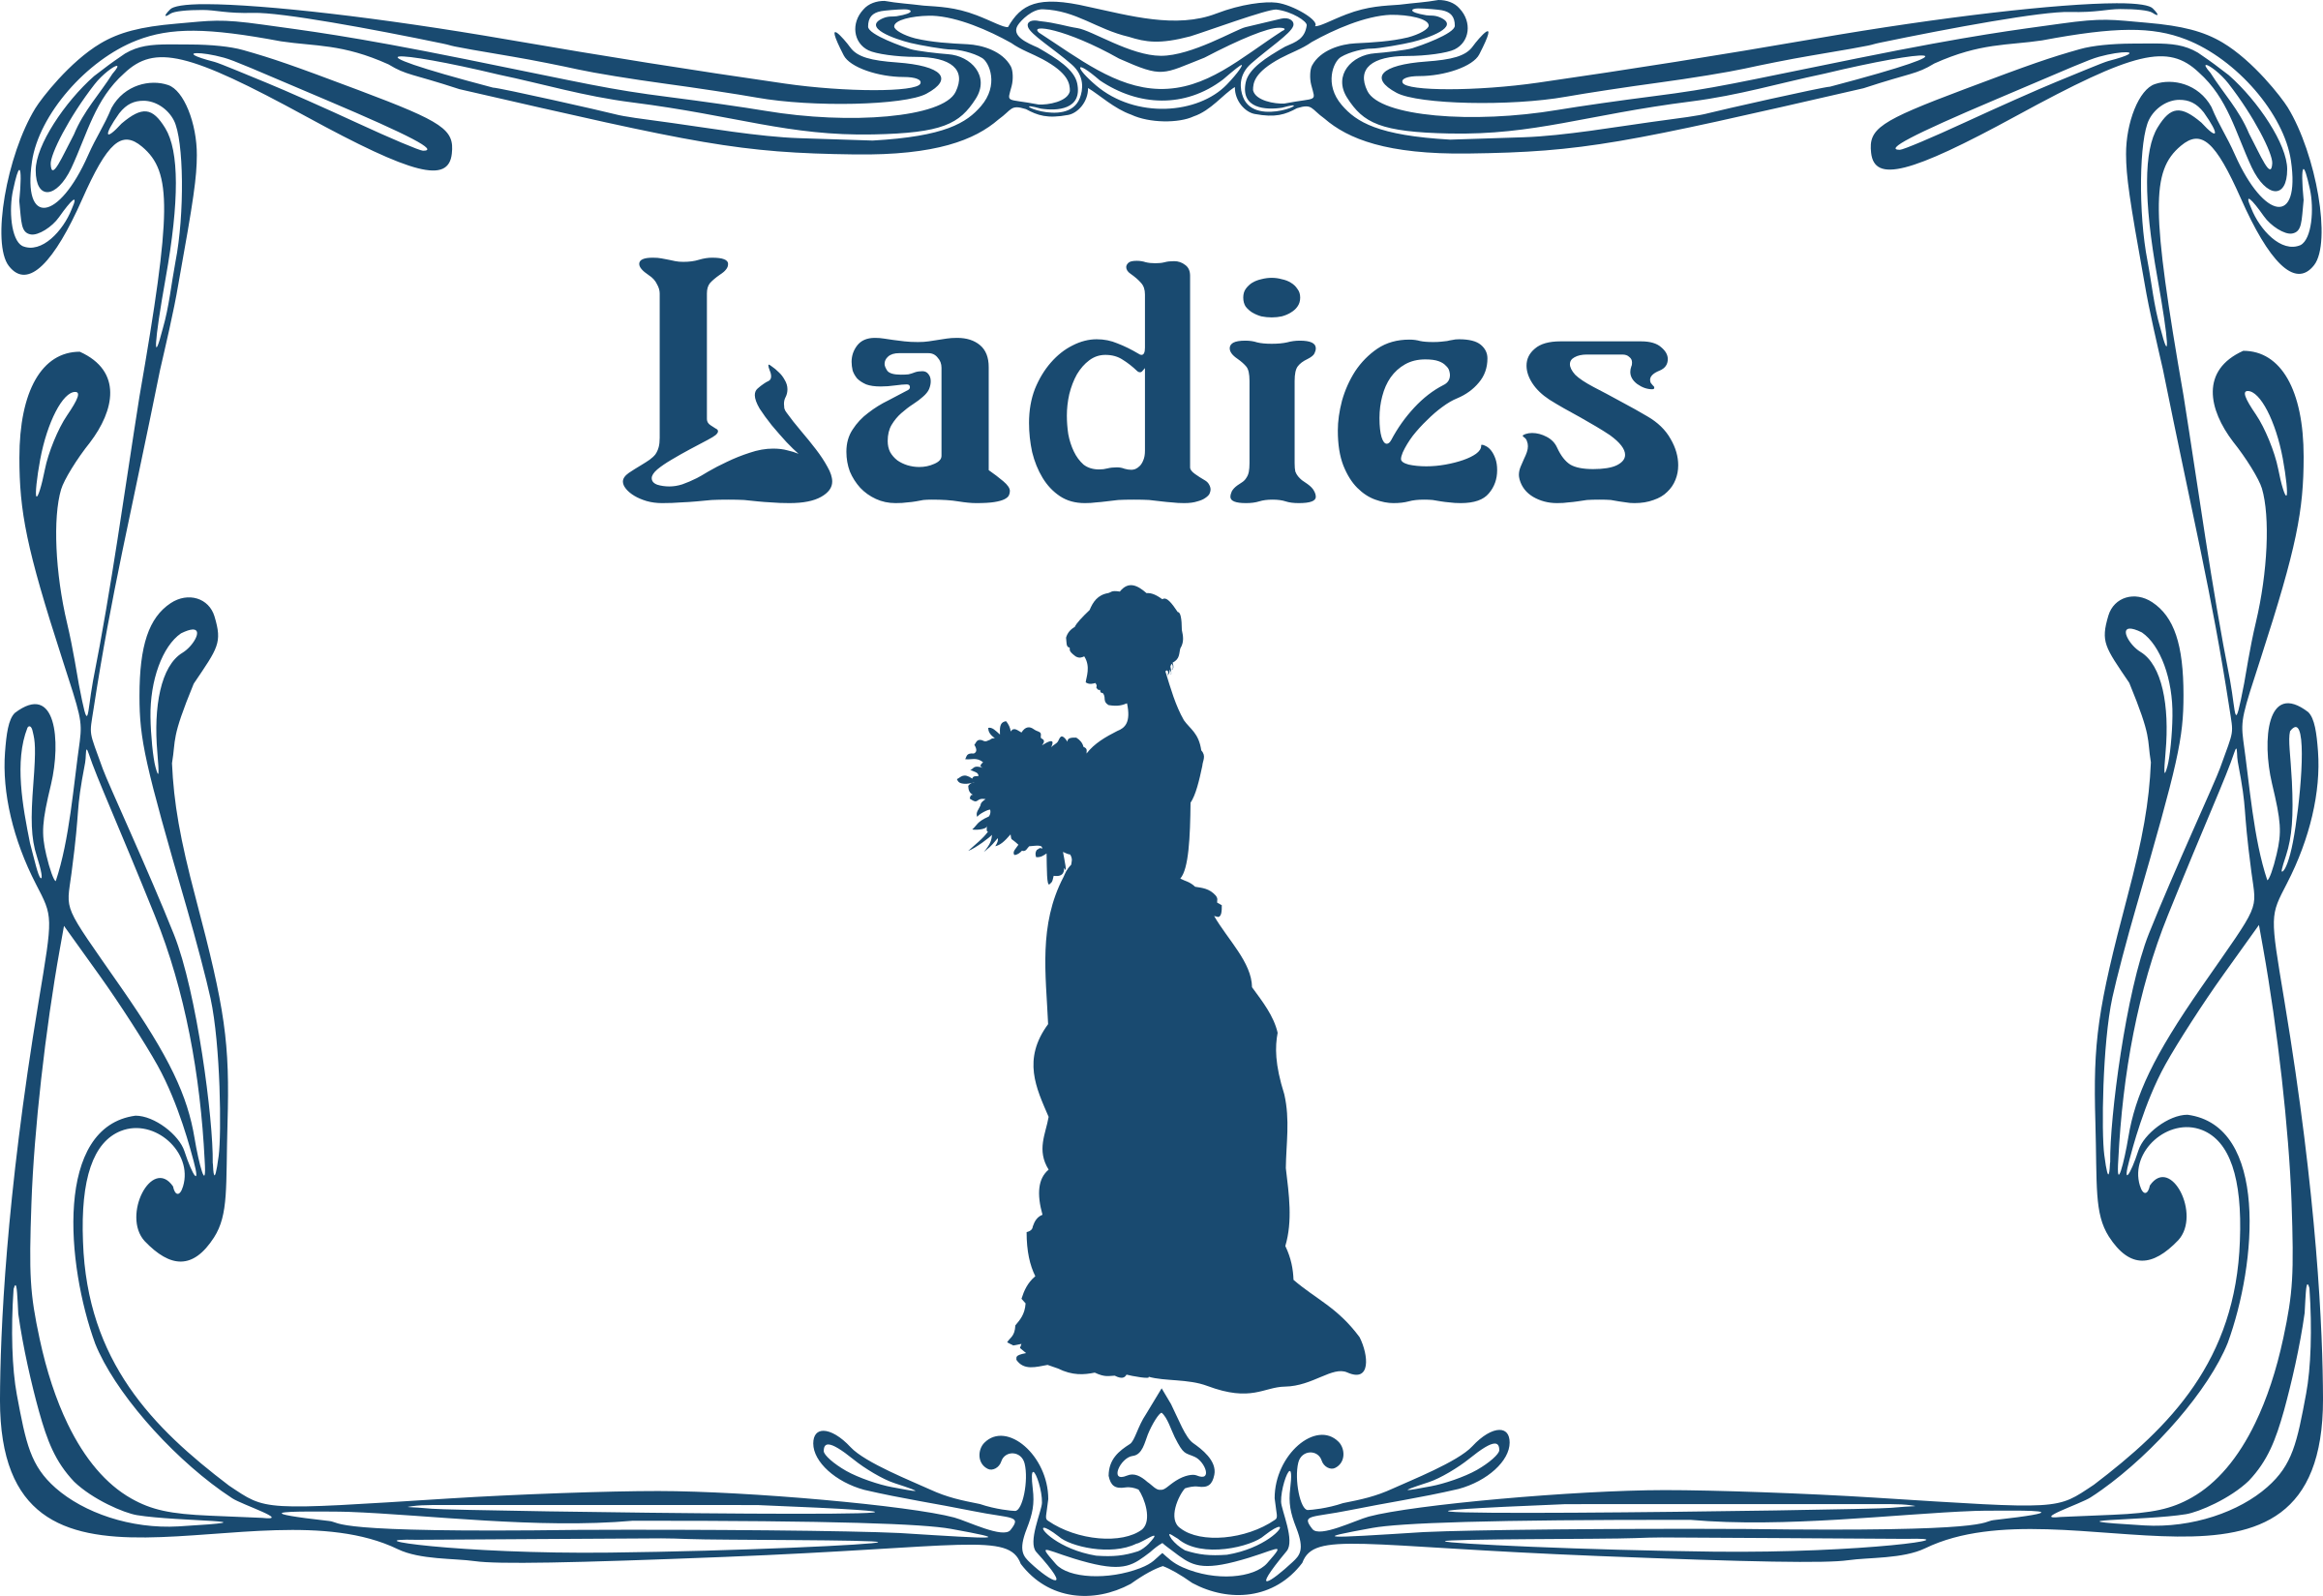 Ladies' toilet door sign by Moini